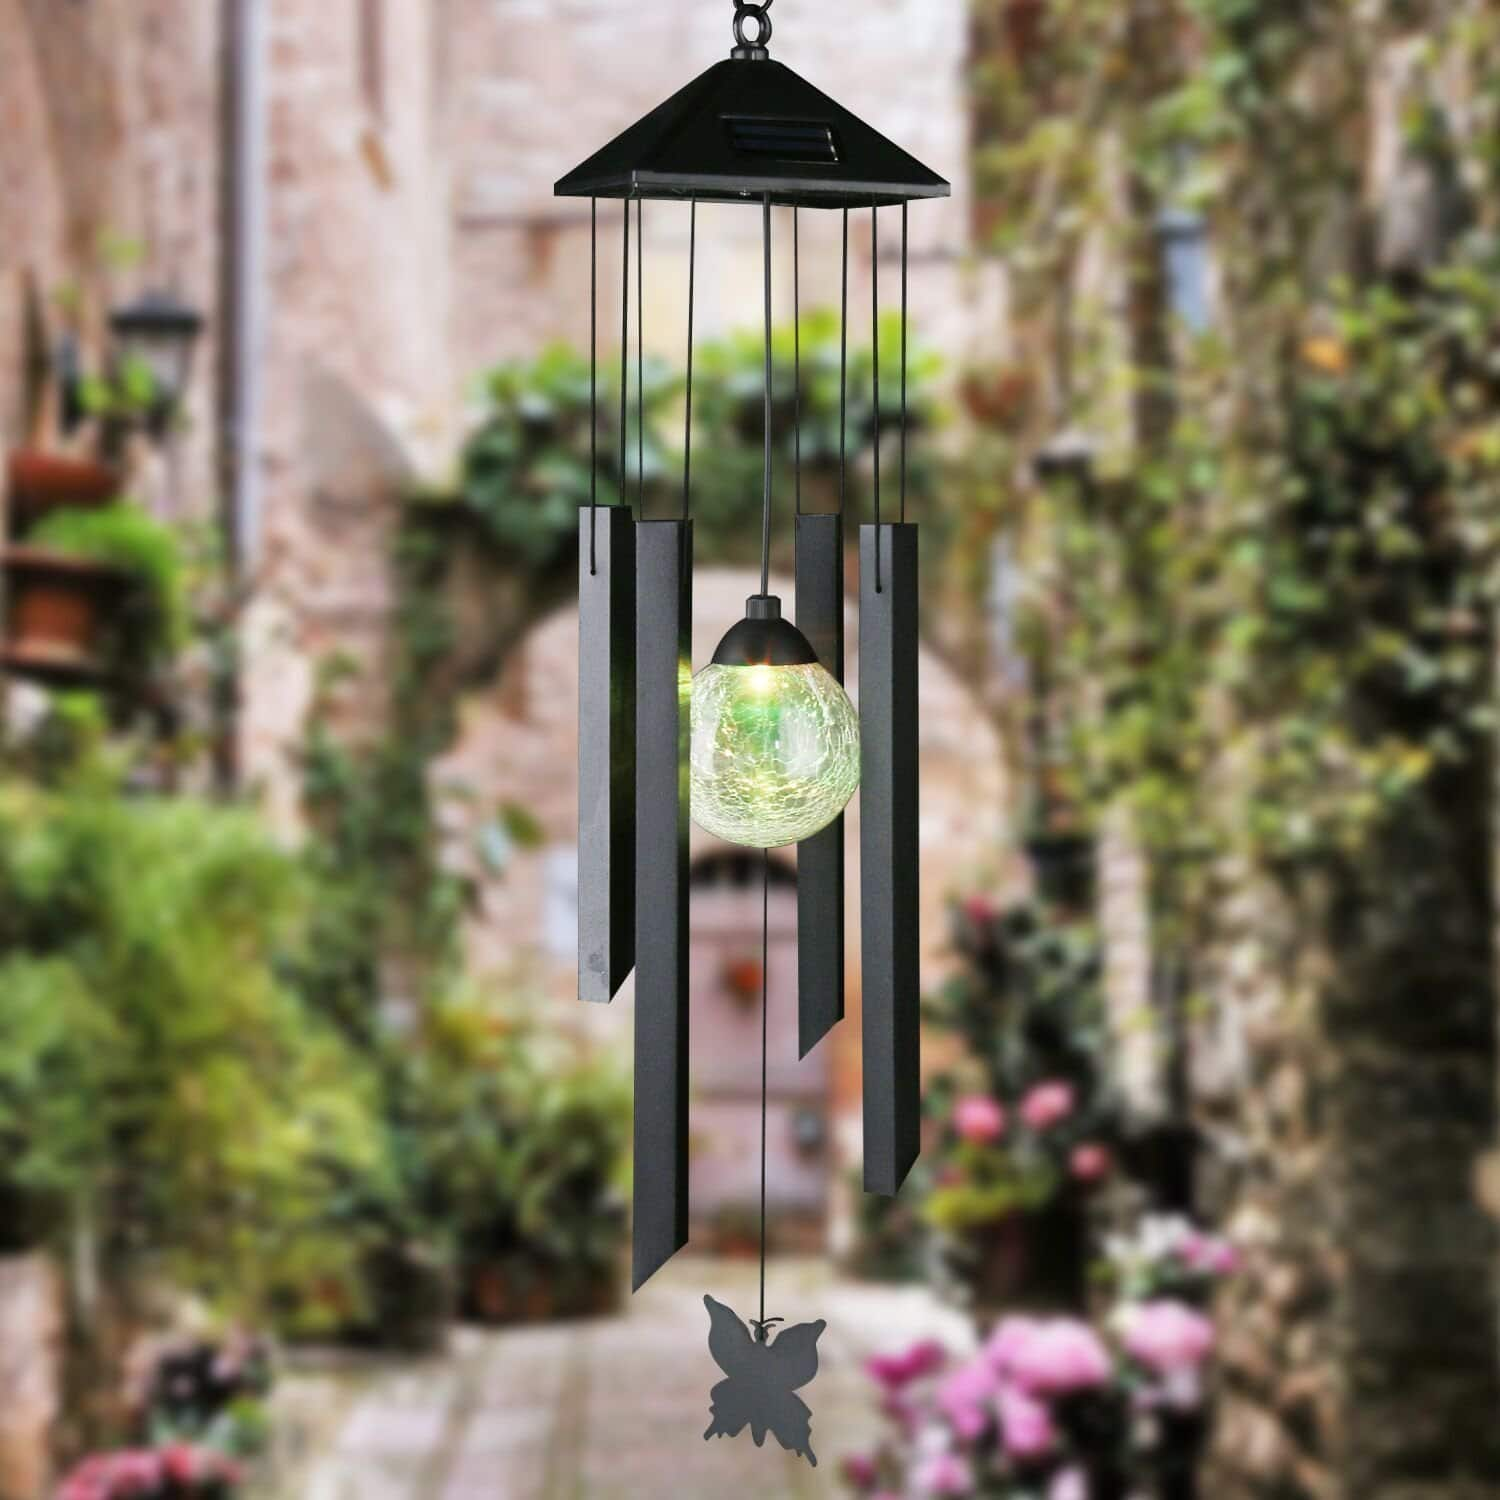 Solar Powered Wind Chime, Garden Lights with Color Changing LED for $16.79 @ Amazon